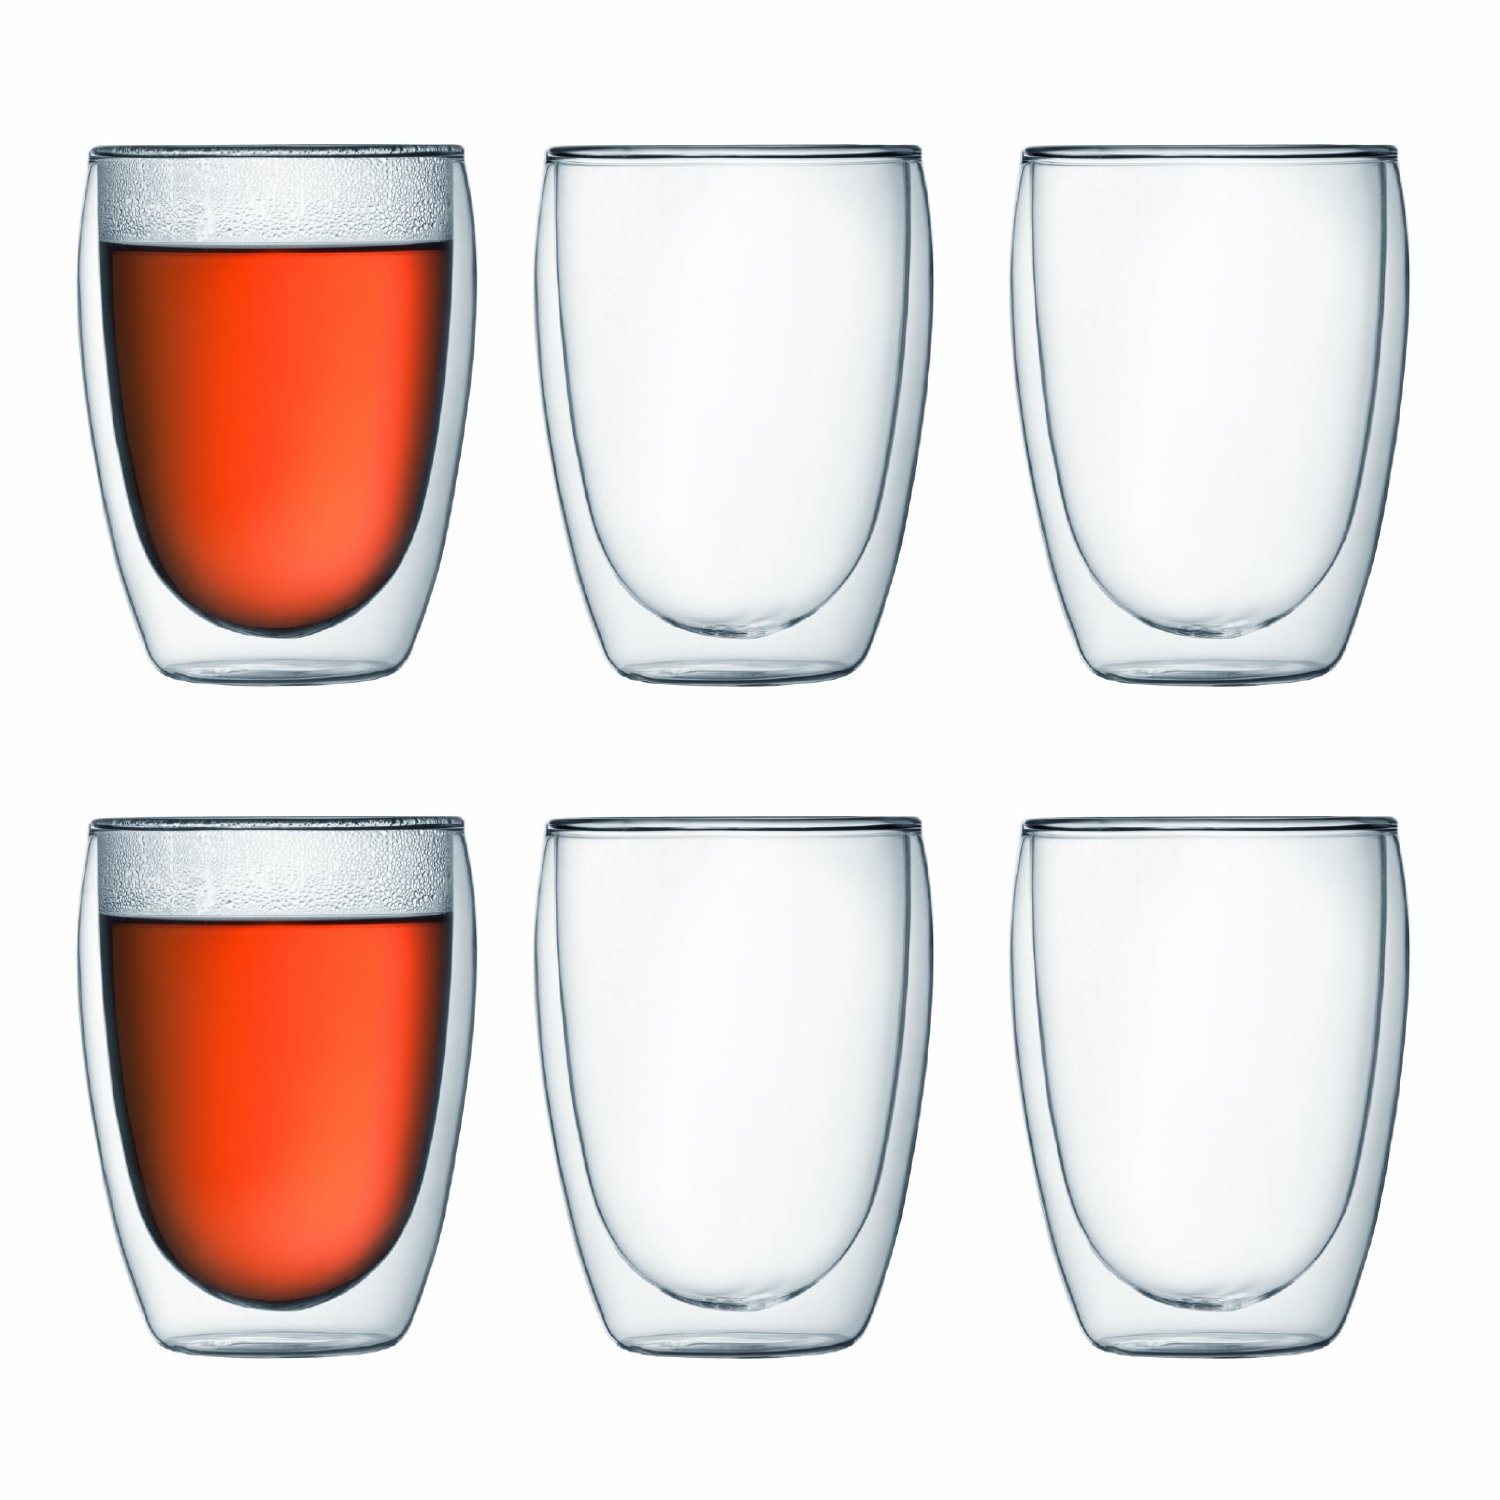 6 x PAVINA DOUBLE WALL GLASS, 25 cl BODUM